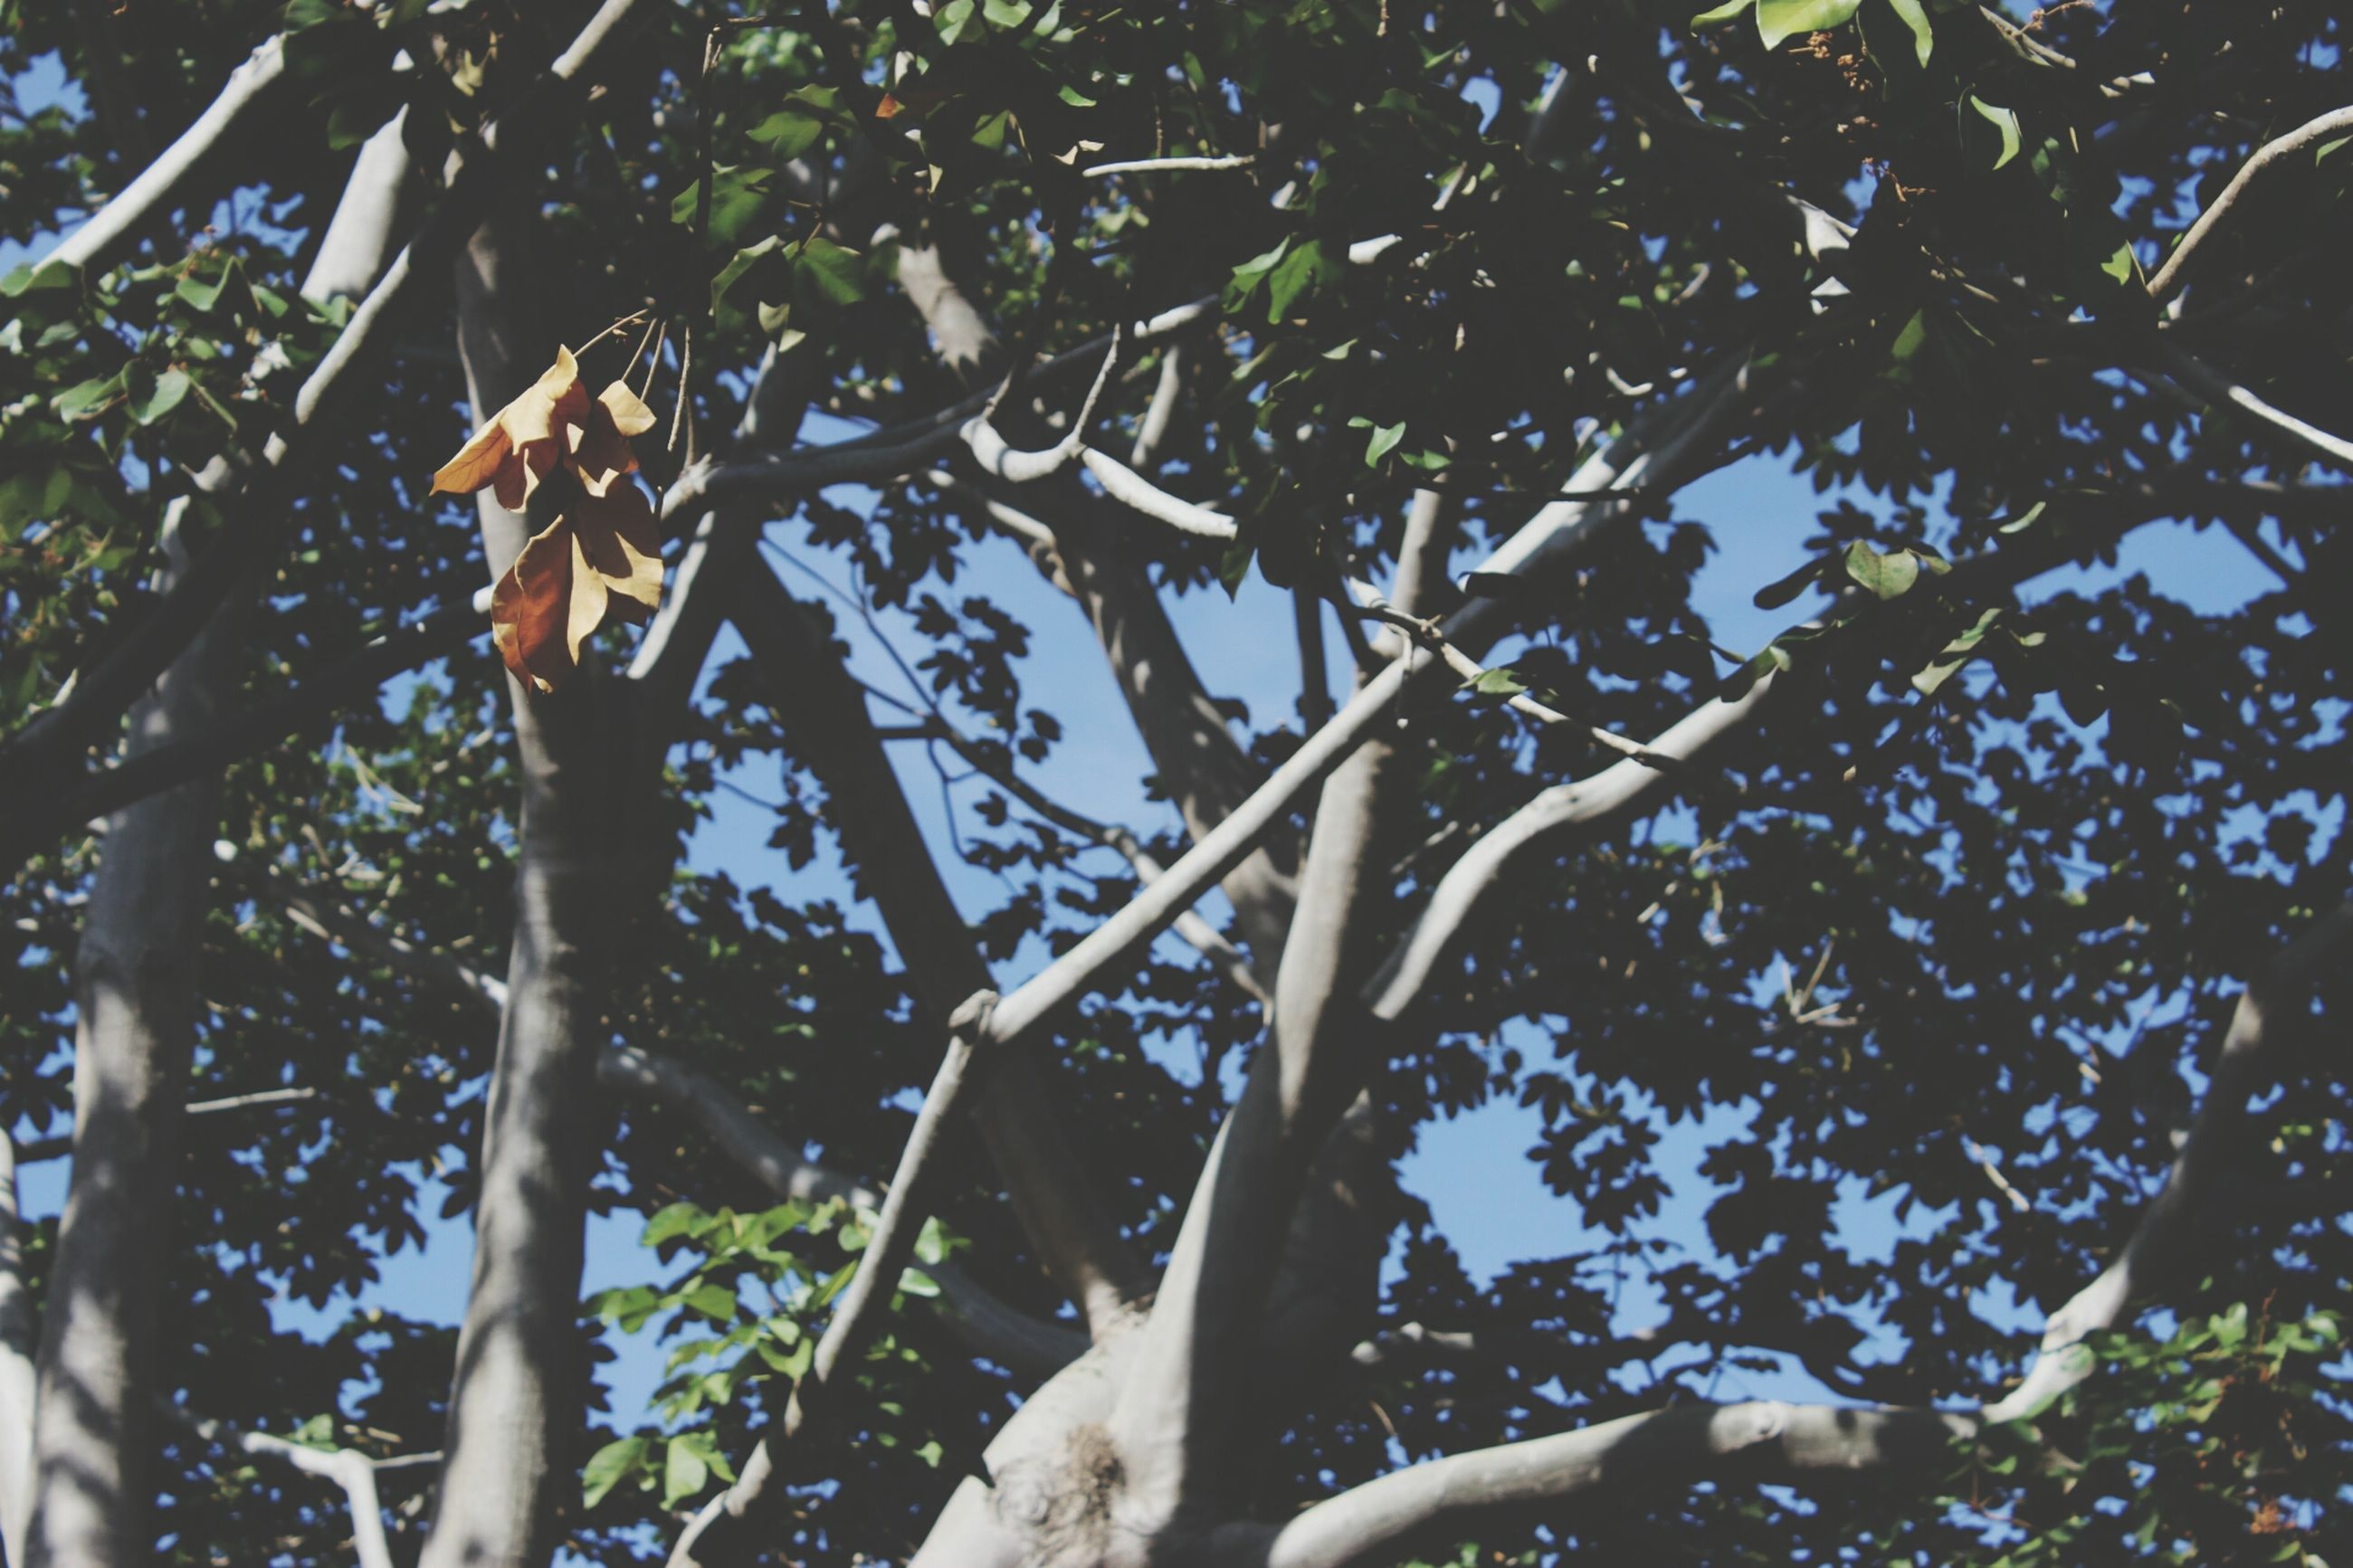 tree, branch, low angle view, growth, leaf, nature, tree trunk, tranquility, sunlight, beauty in nature, day, outdoors, no people, green color, clear sky, forest, plant, sky, close-up, growing